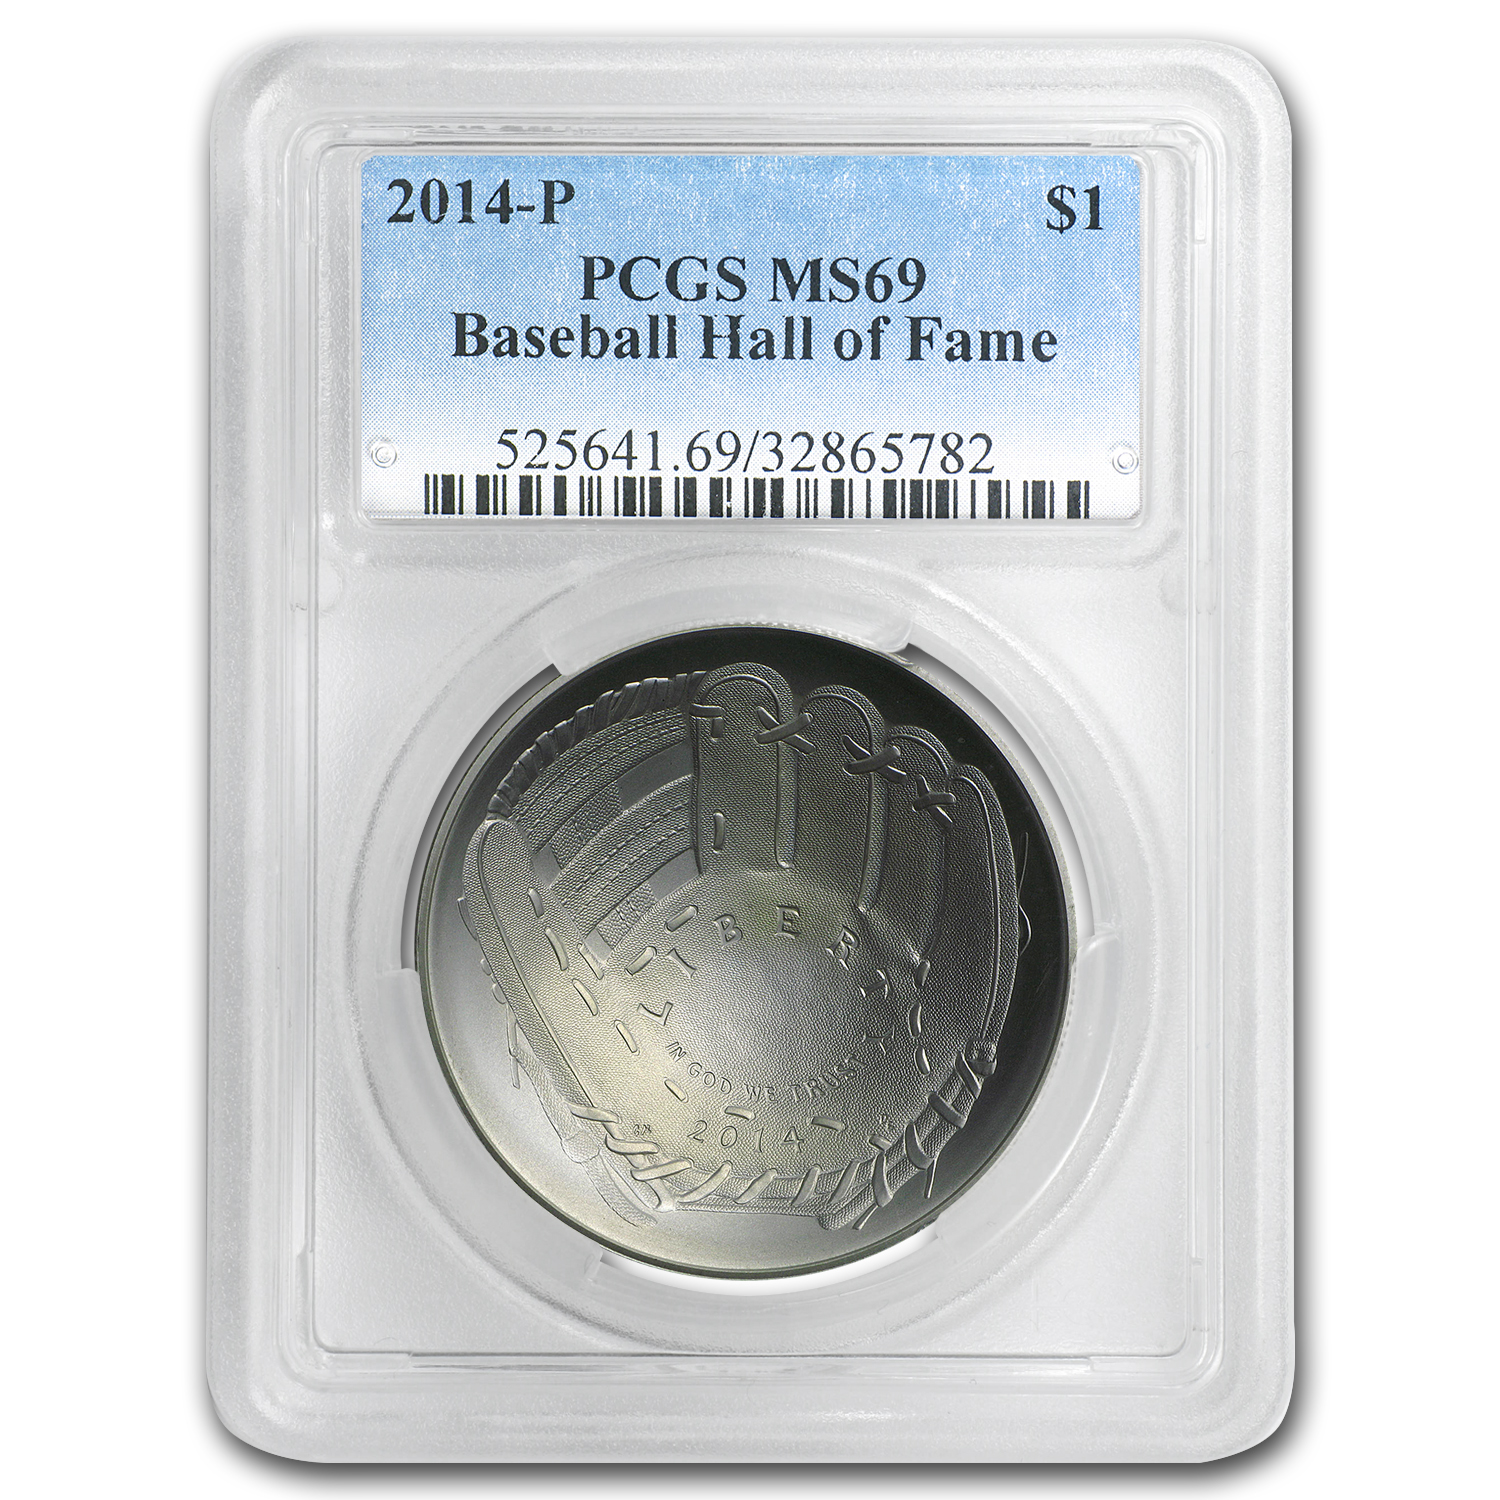 2014-P Baseball HOF $1 Silver Commem MS-69 PCGS